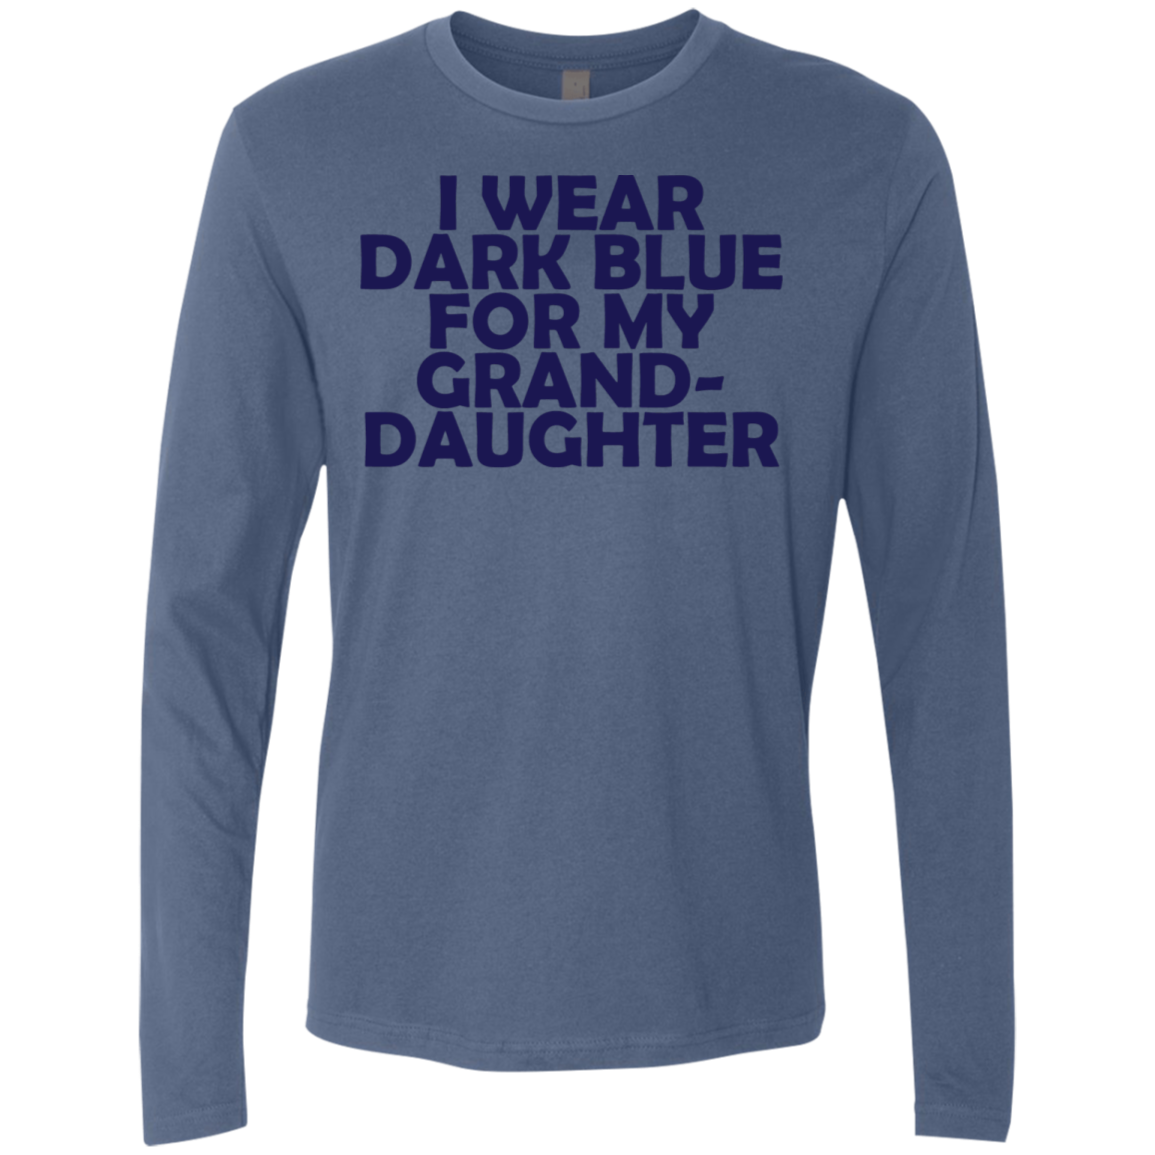 I Wear Dark Blue For My Grand Daughter Men's Long Sleeve Tee